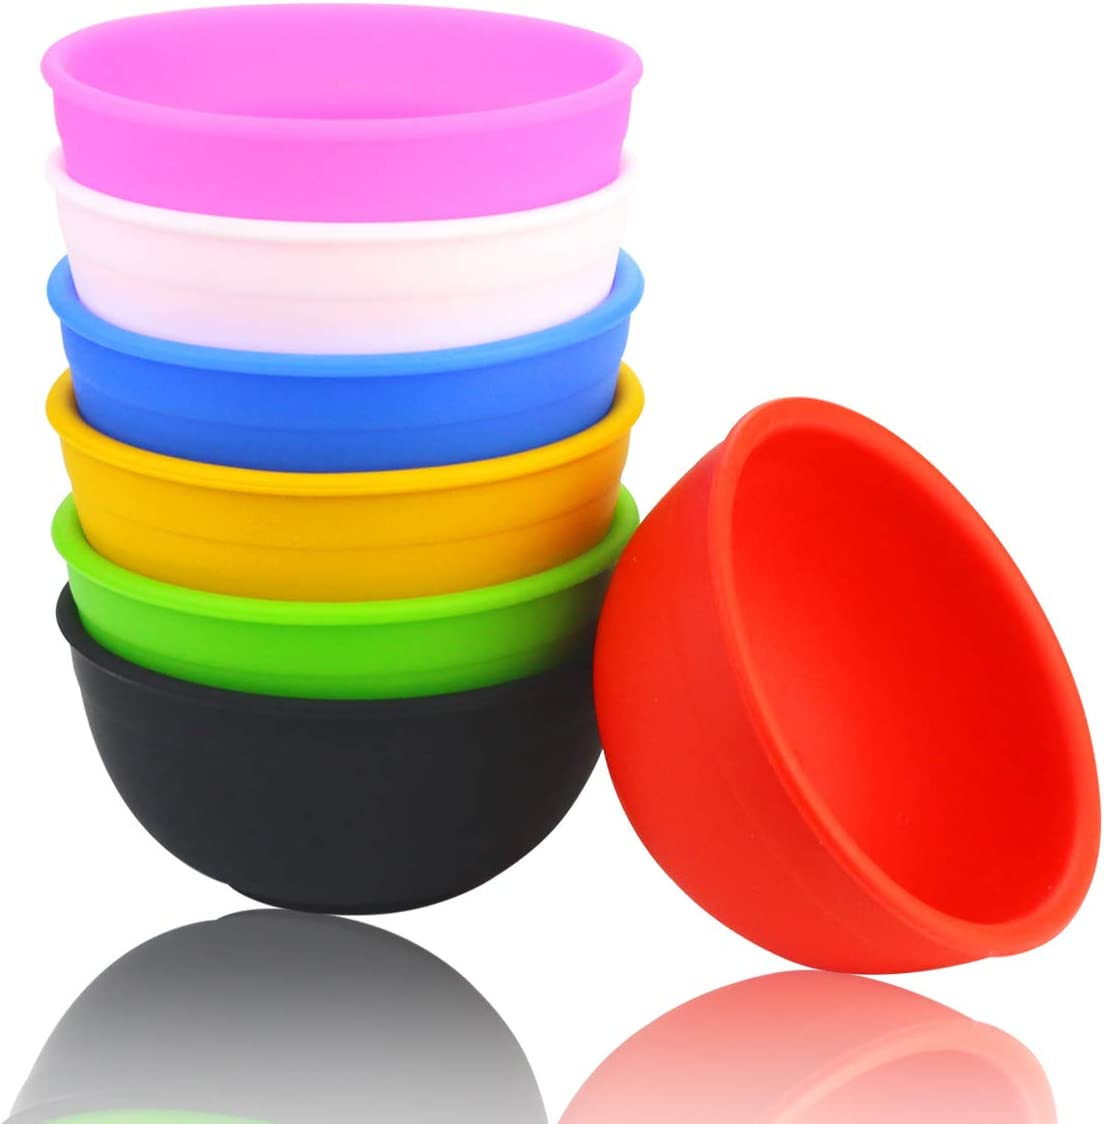 Fireboomoon 7 PCS Mini Silicone Pinch Bowls,1.75 Ounce/50 ML,Reusable Prep and Serve Bowls for DIY Crafts,Condiments,Sauce,Dips,Candy,Fruits,Snacks,Appetizer(Multicolor)